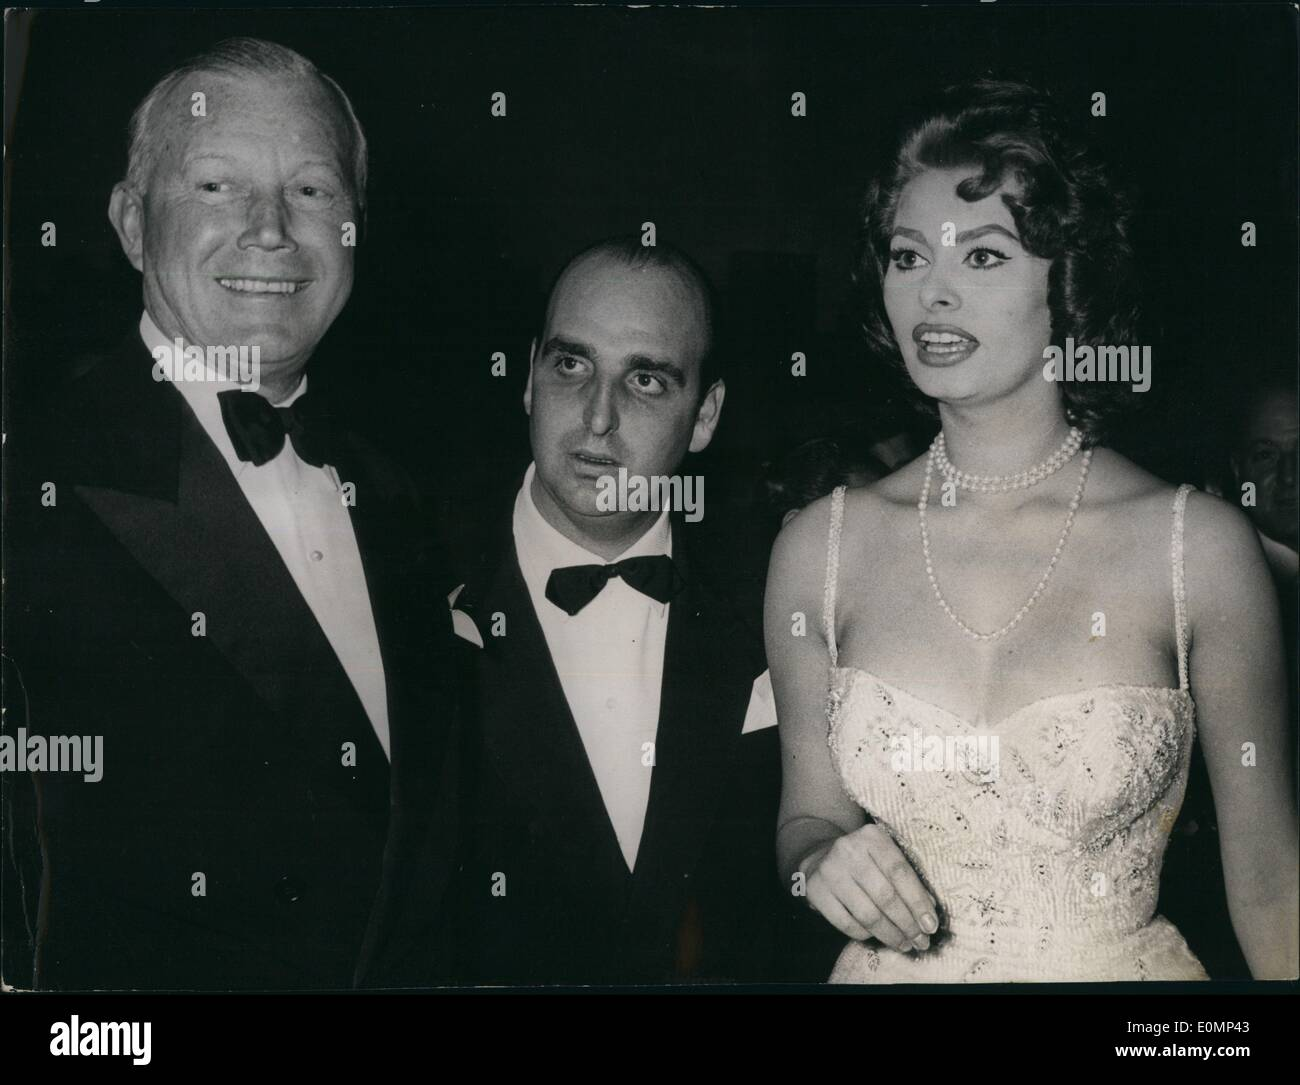 Feb. 02, 1956 - Pictured is famous actress Sofia Loren, who was the honored guest at a Gala evening held at the Miramonti Hotel - Stock Image